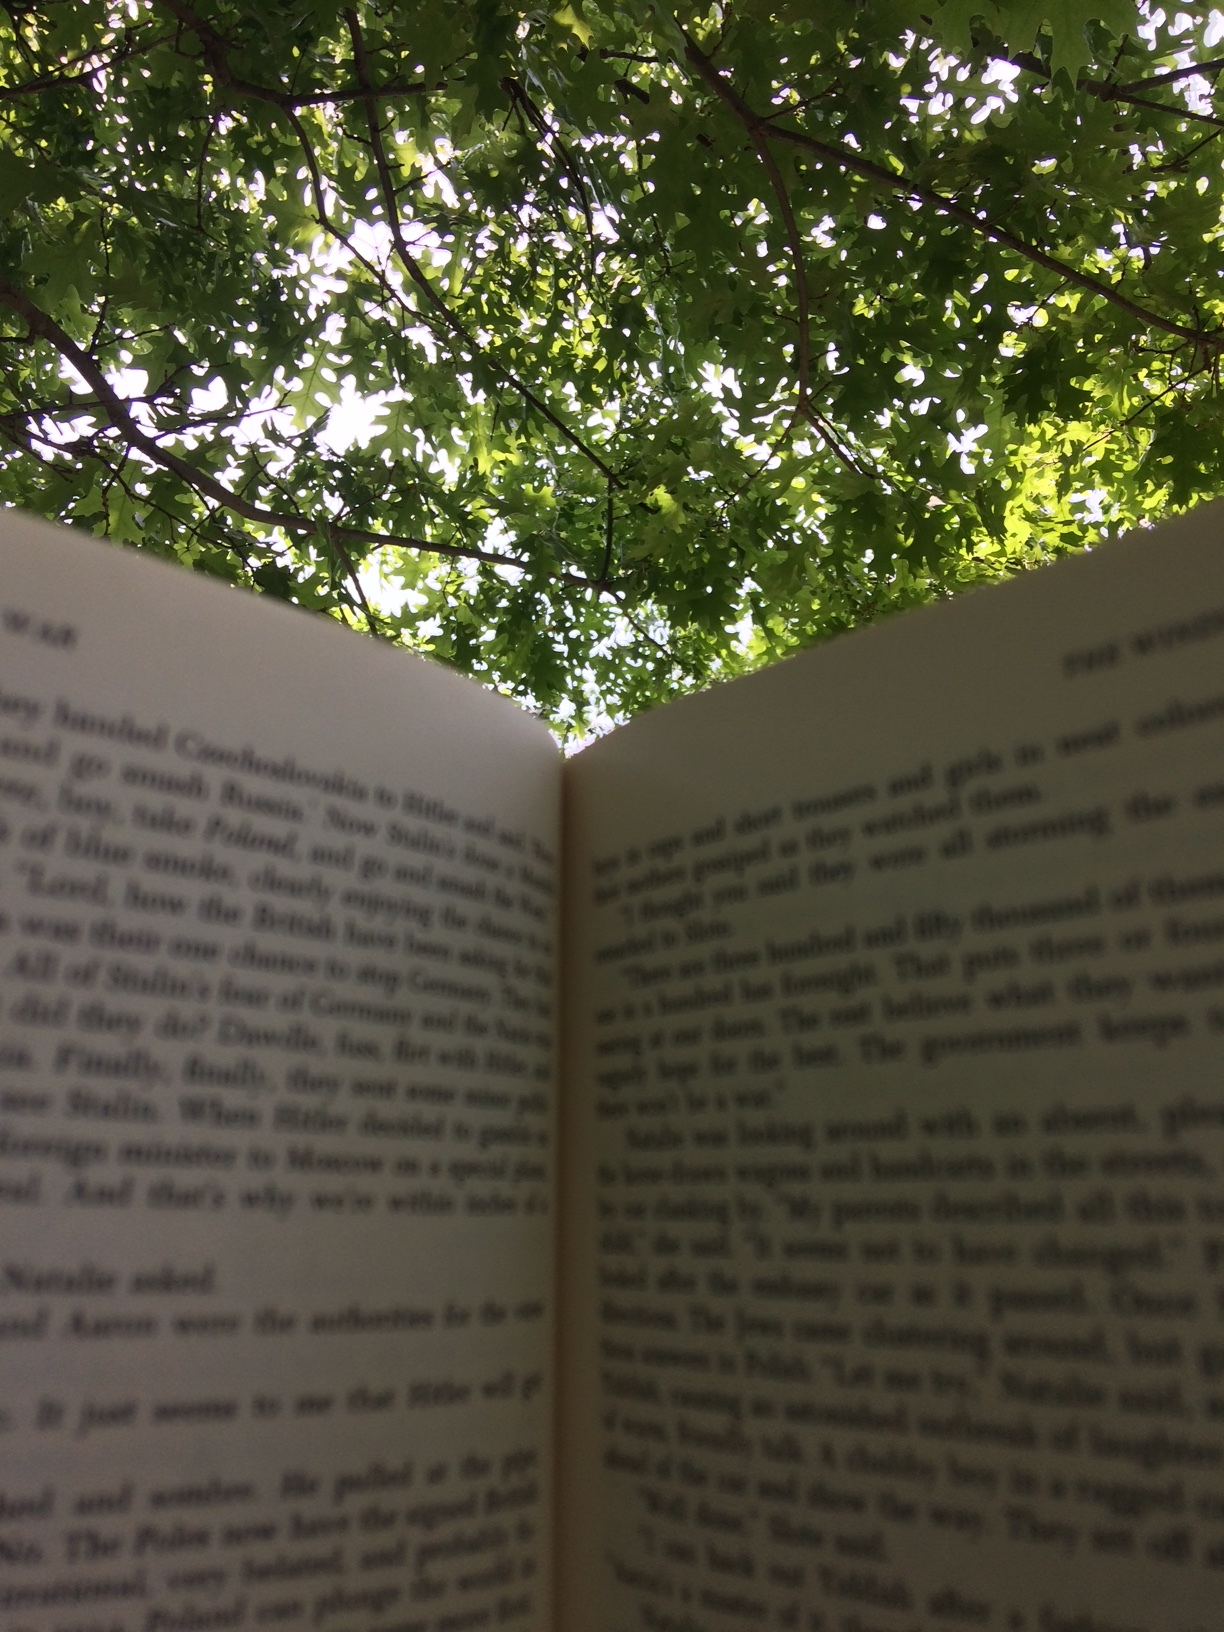 Making my way through The Winds of War on my hammock last weekend. A long book read outdoors=Heaven.